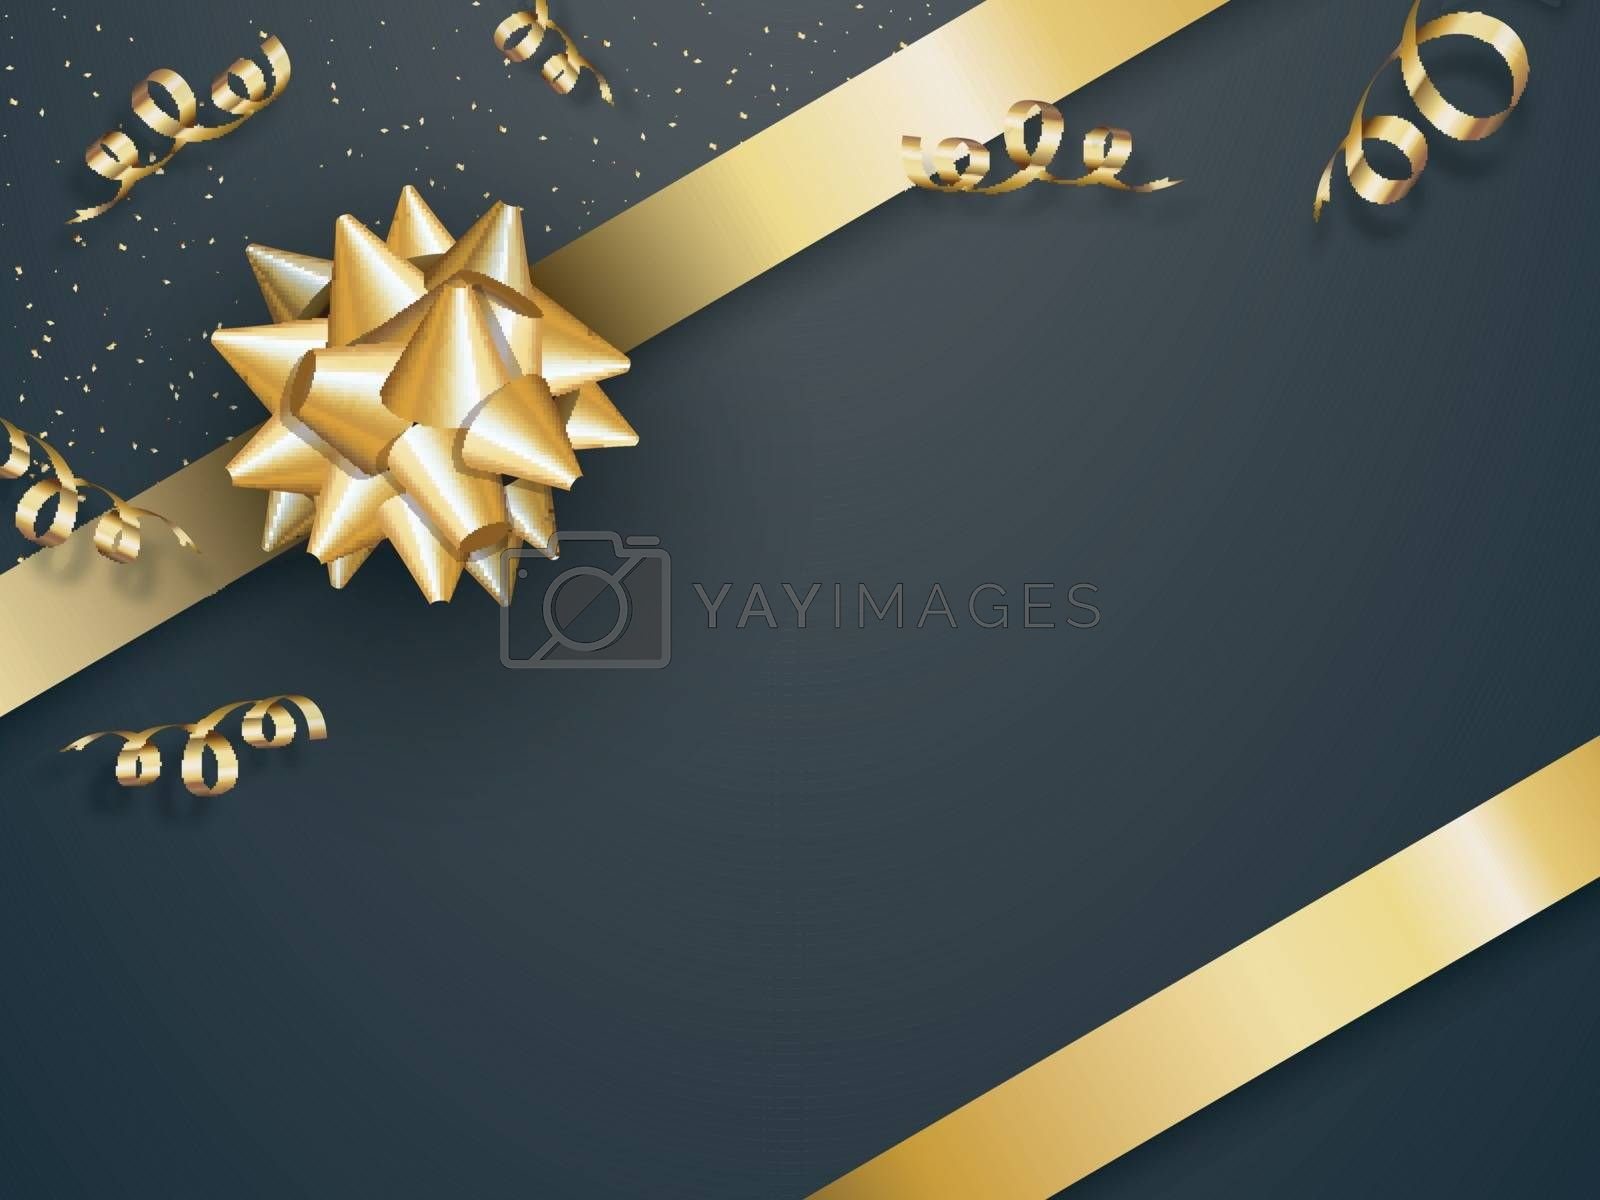 Celebration background decorated with golden ribbon and confetti.